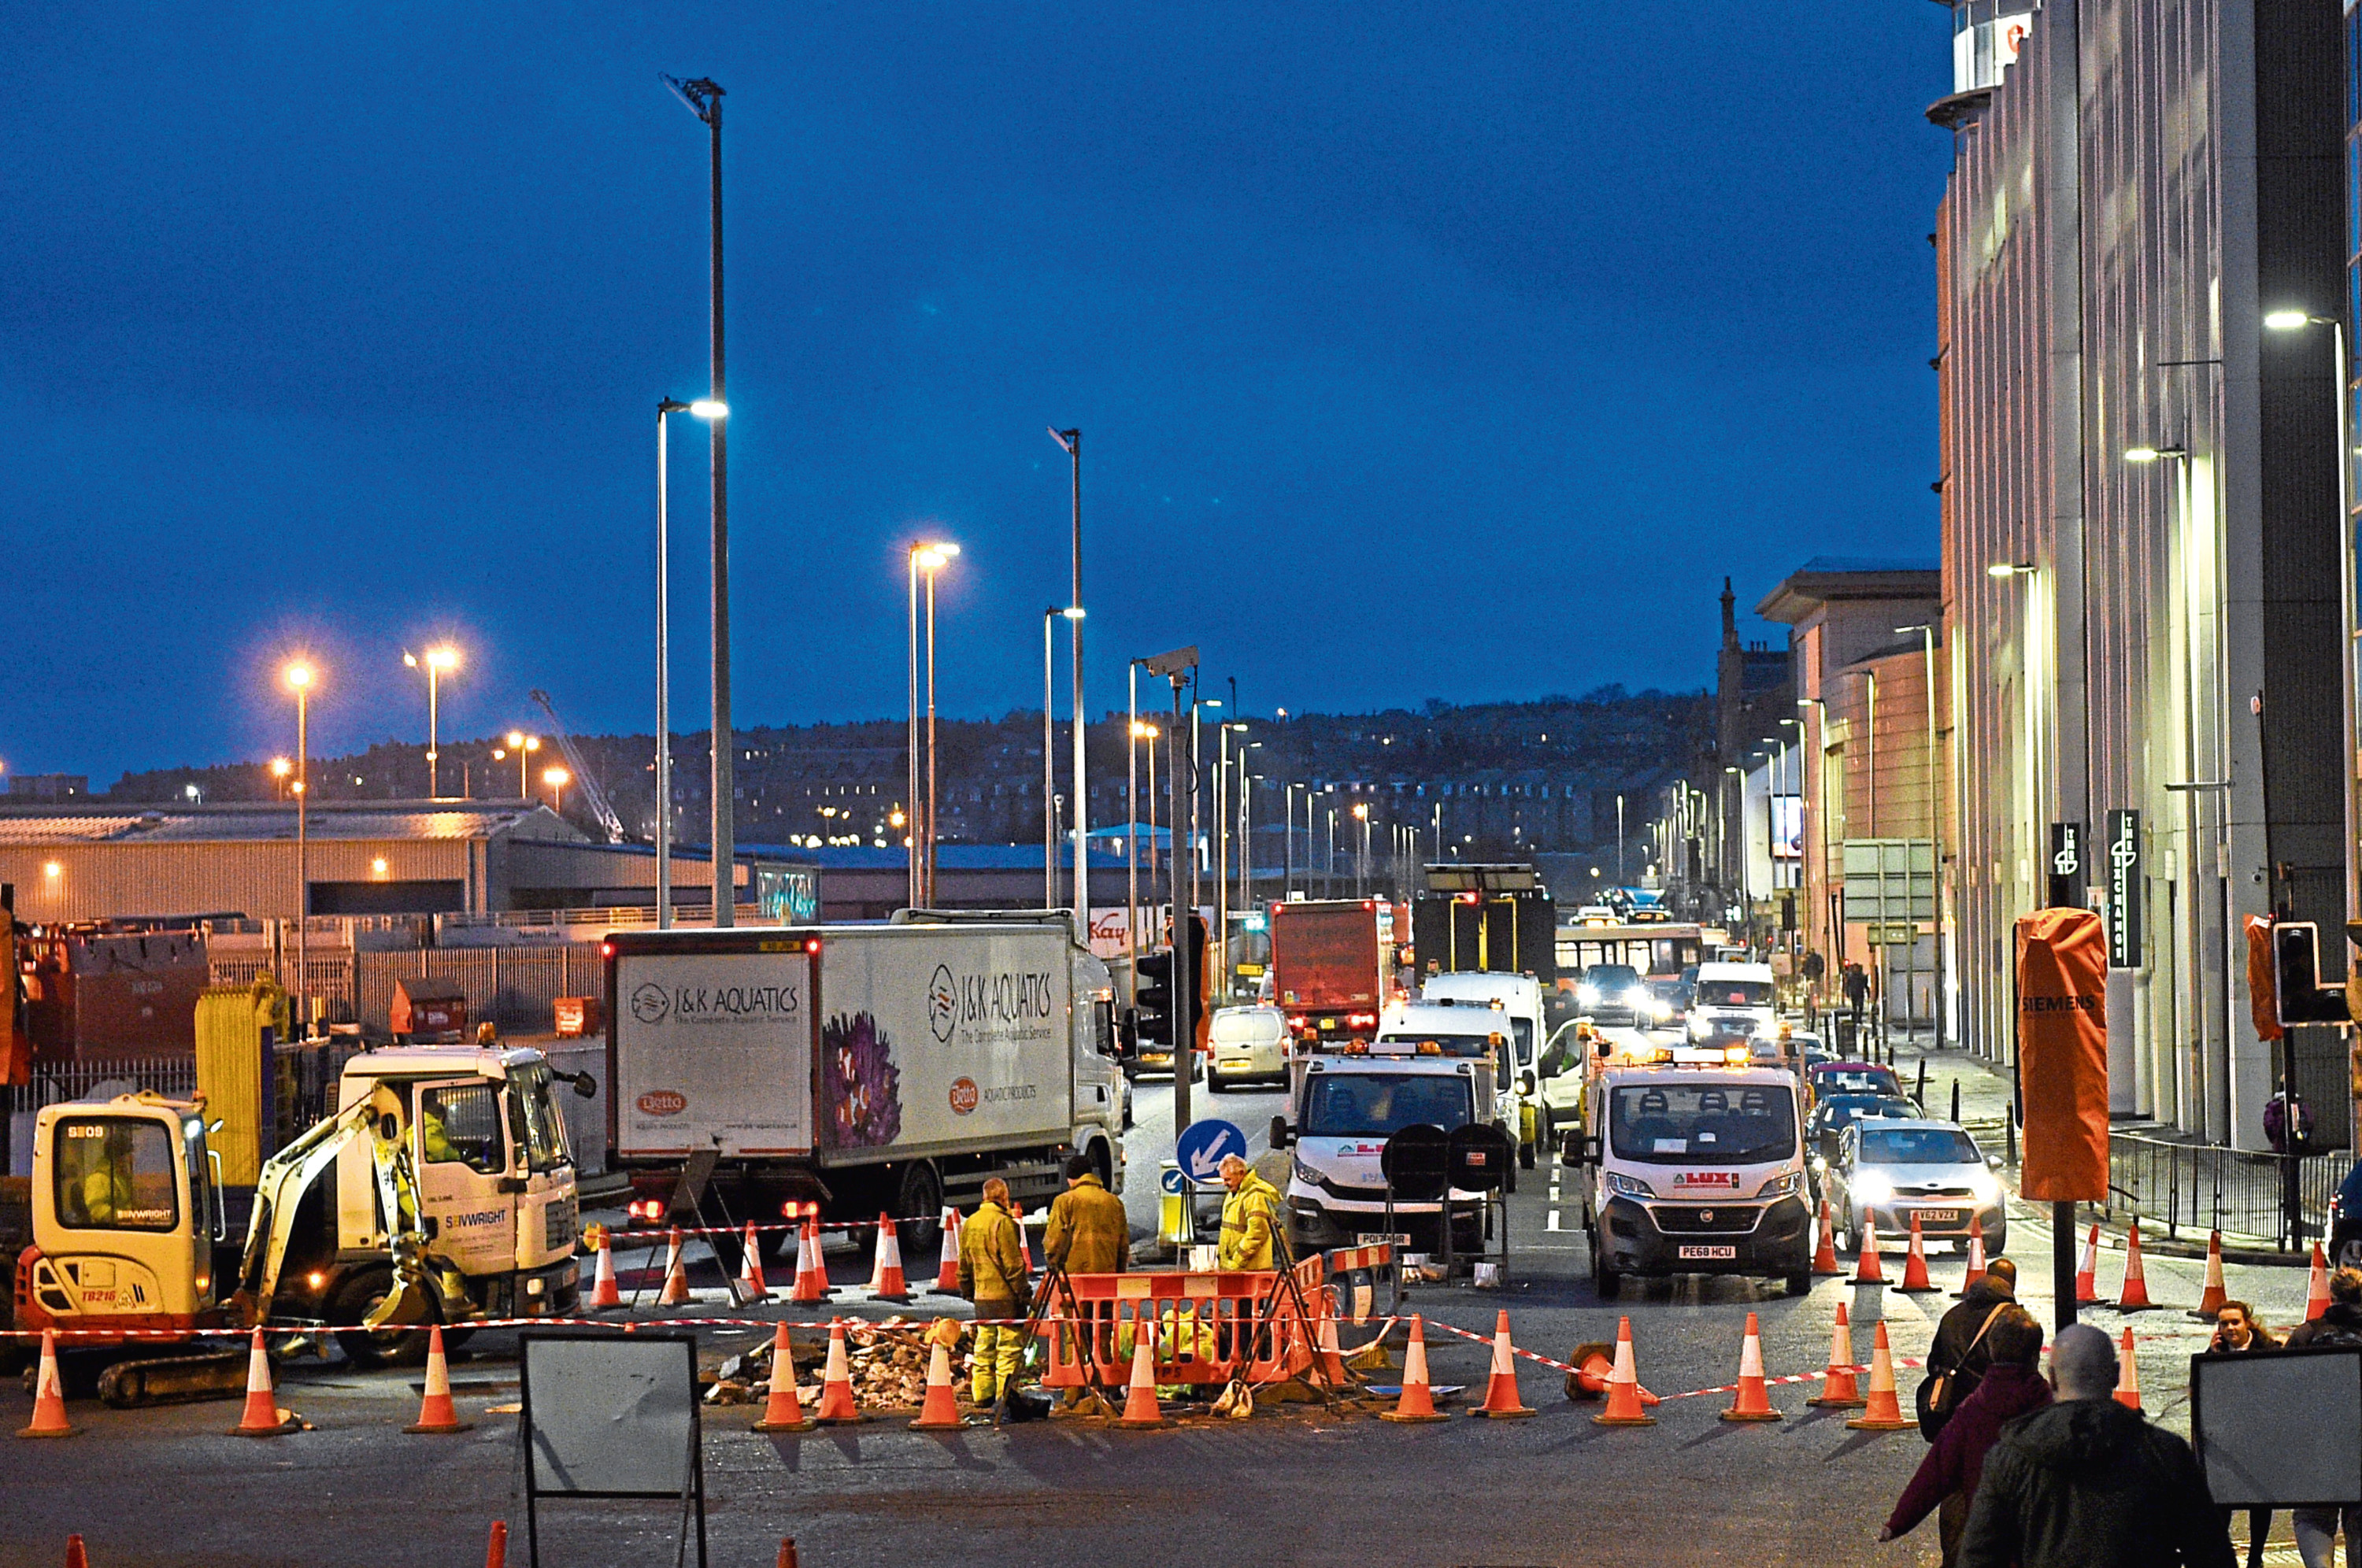 Traffic on Market Street due to the roadworks